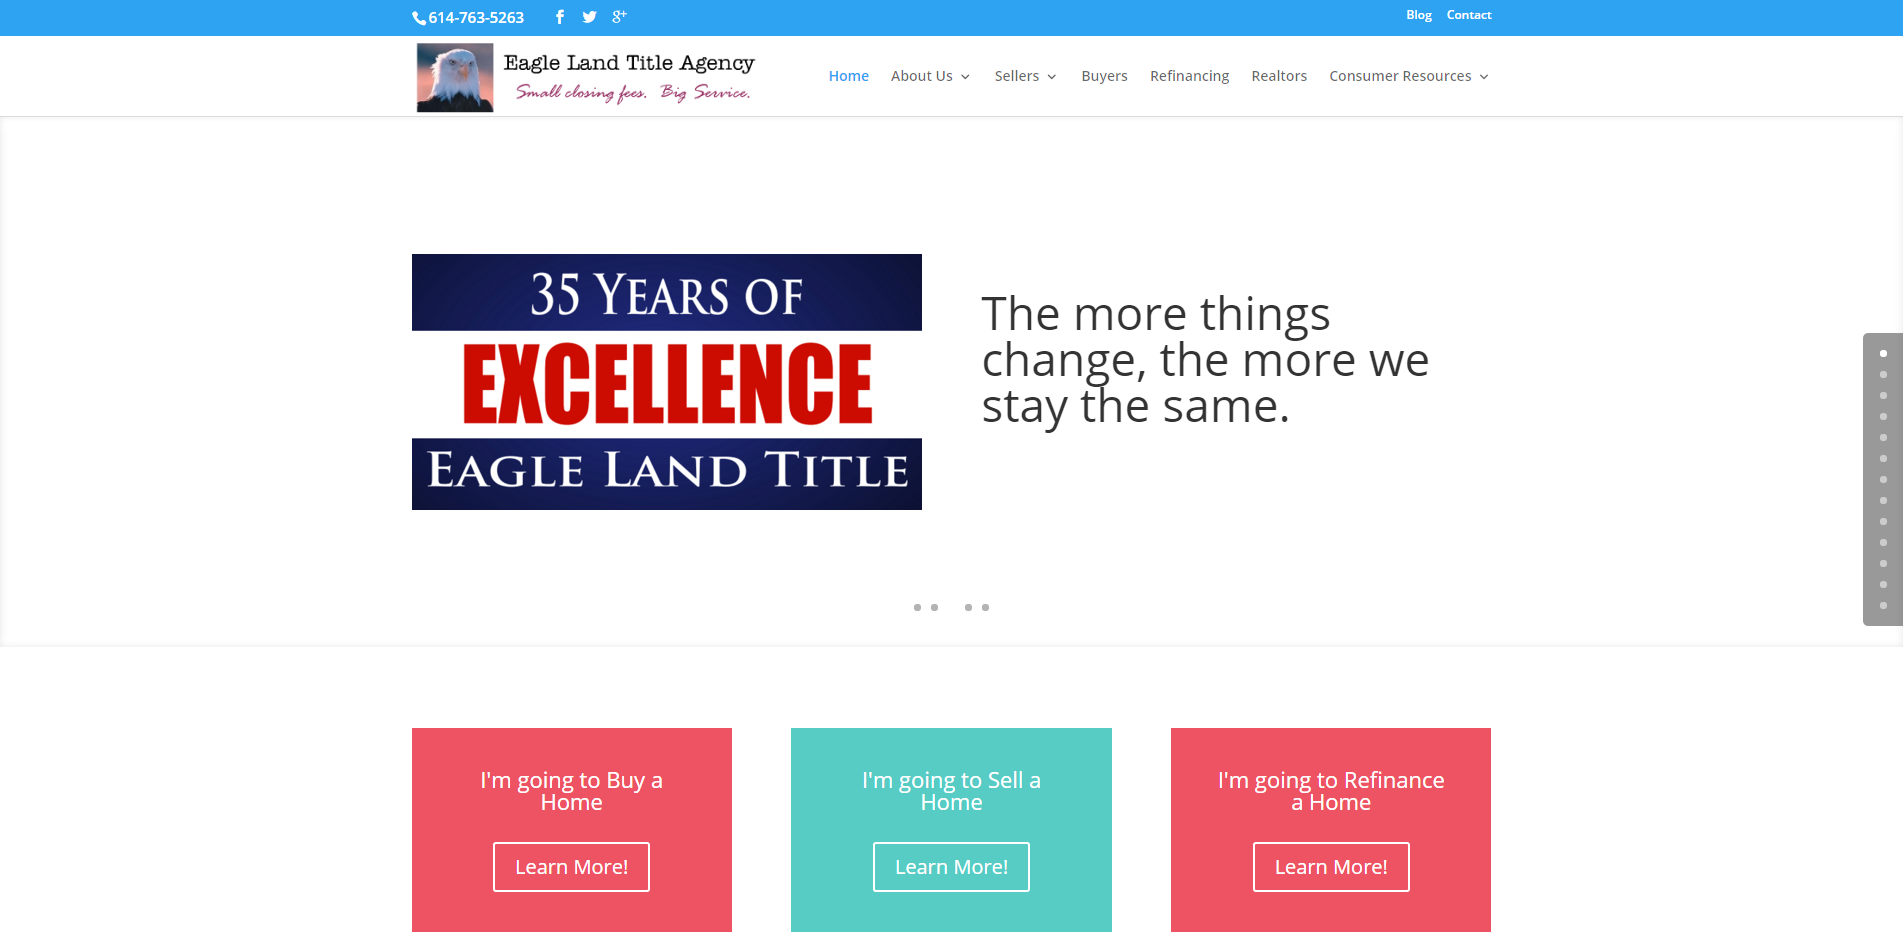 Eagle Land Title Agency